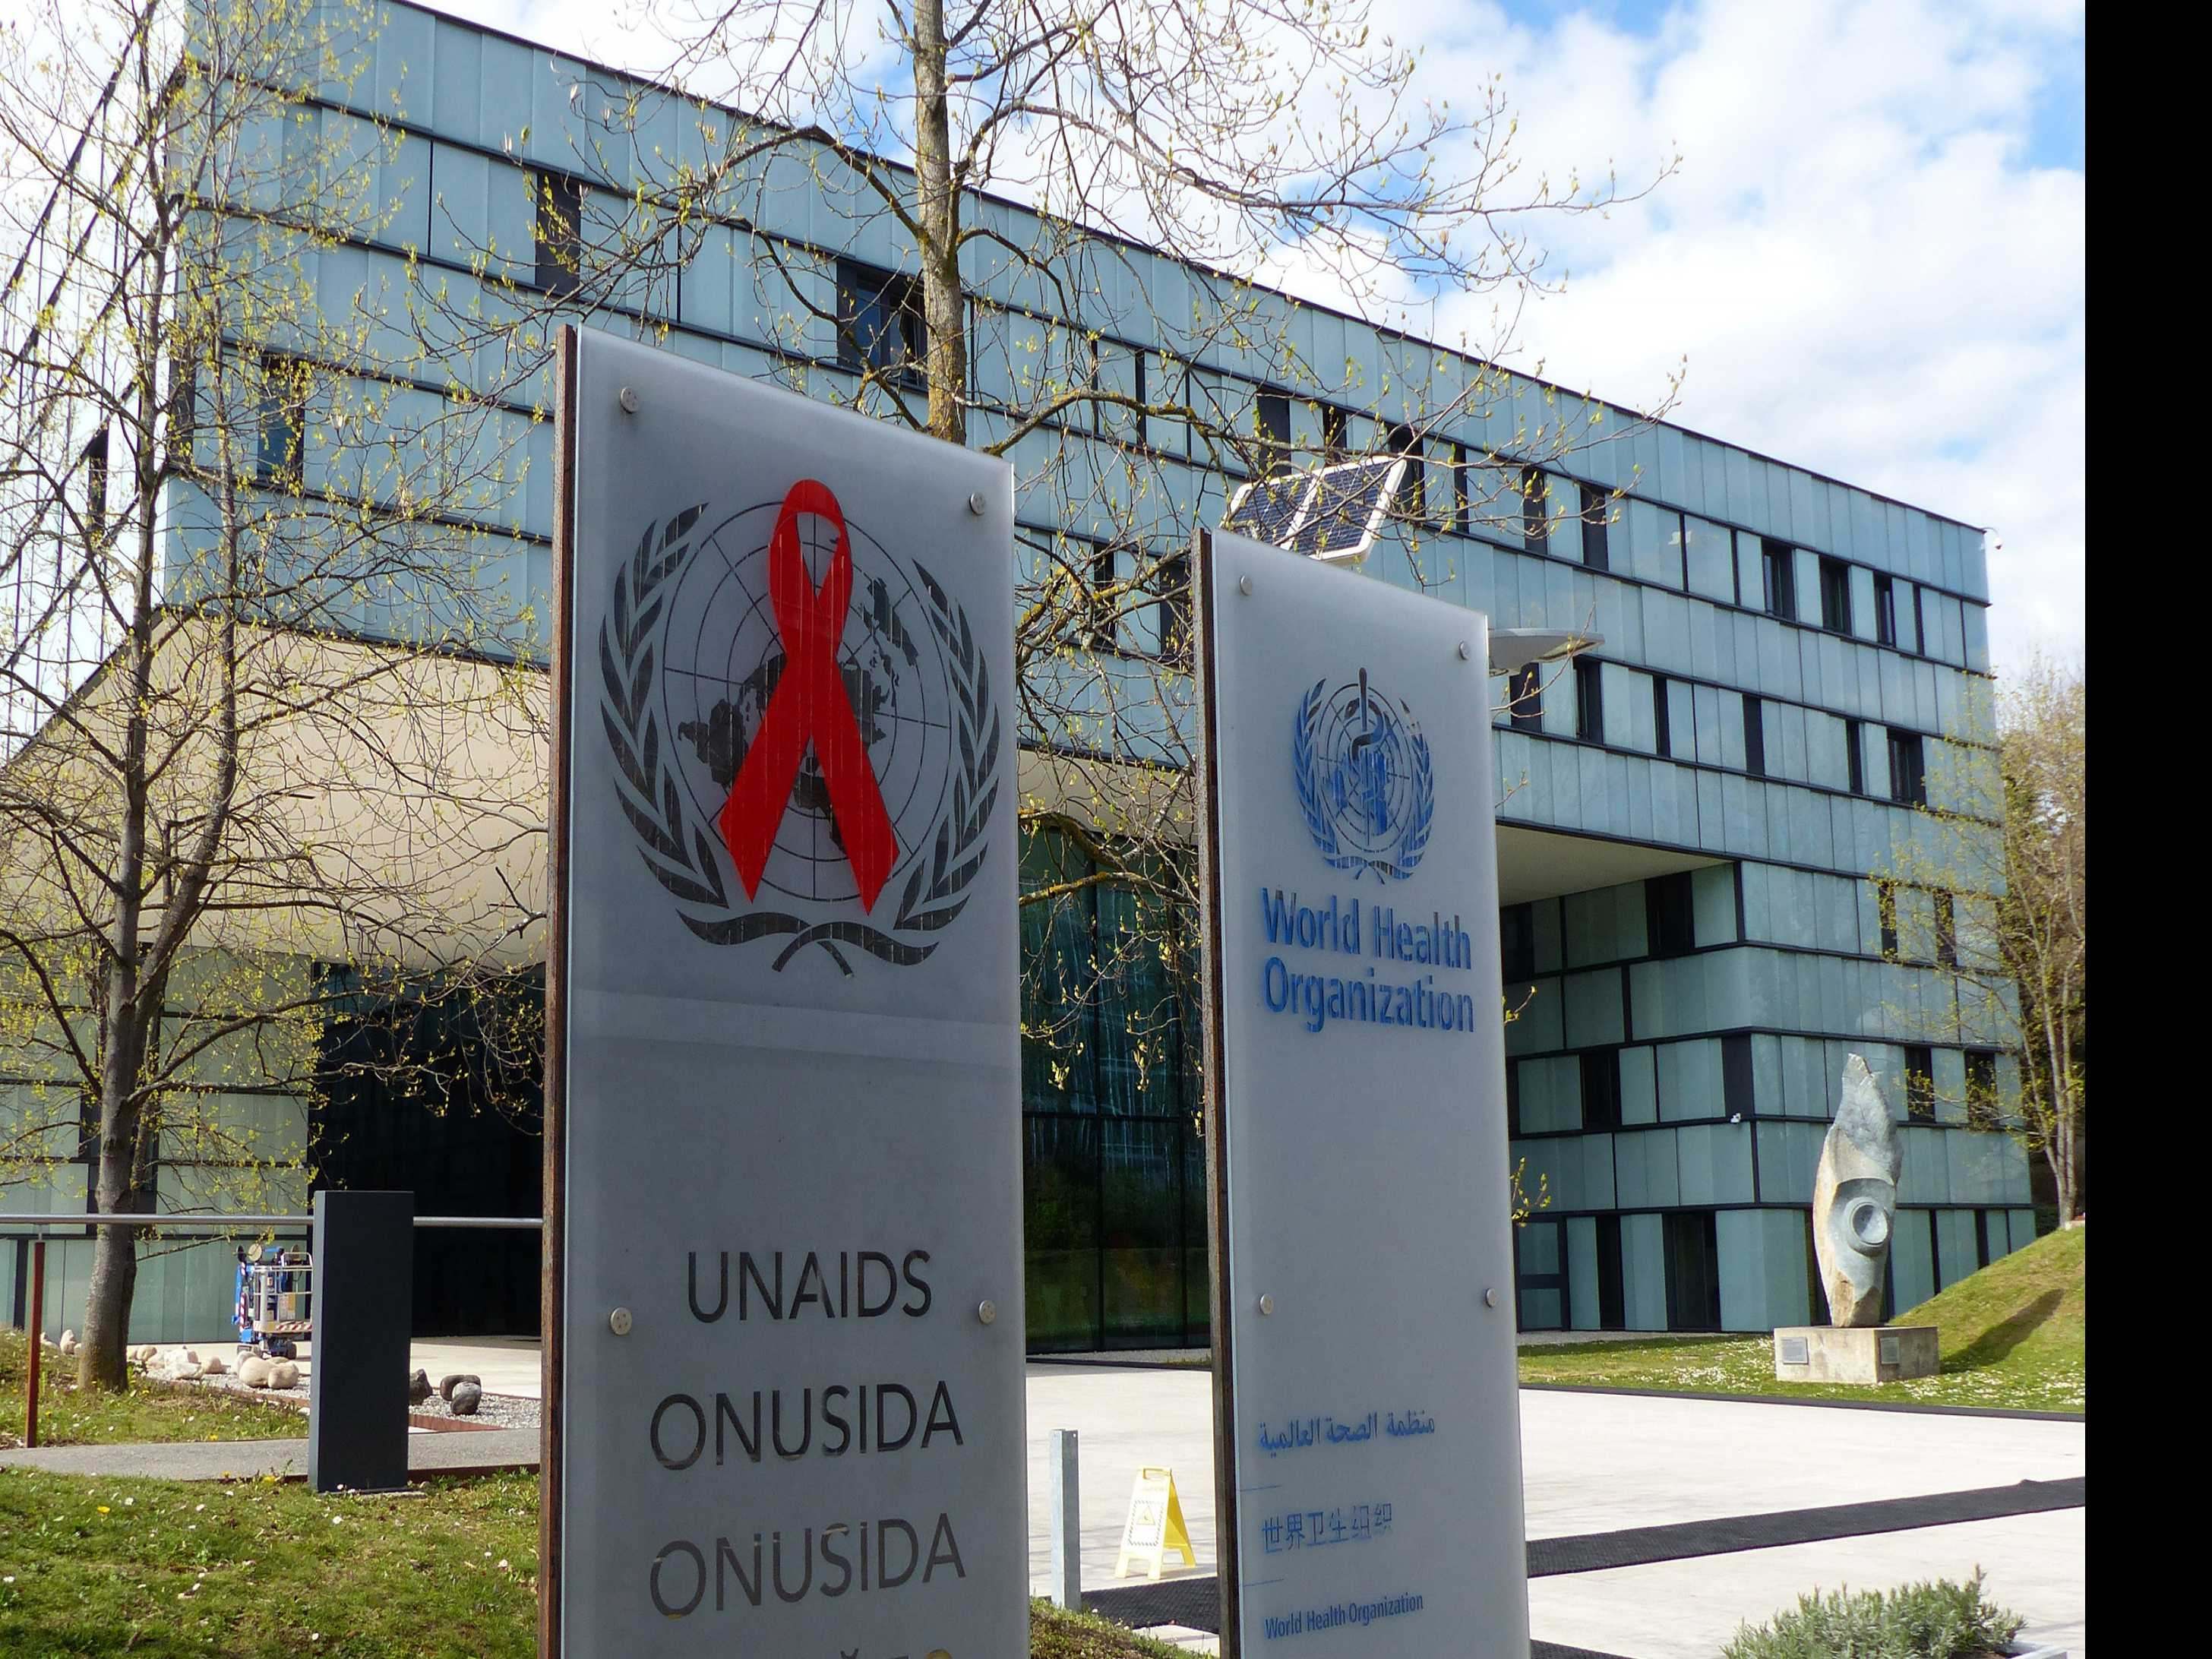 US 'Concerned' Over Misused Funds Allegations at UNAIDS